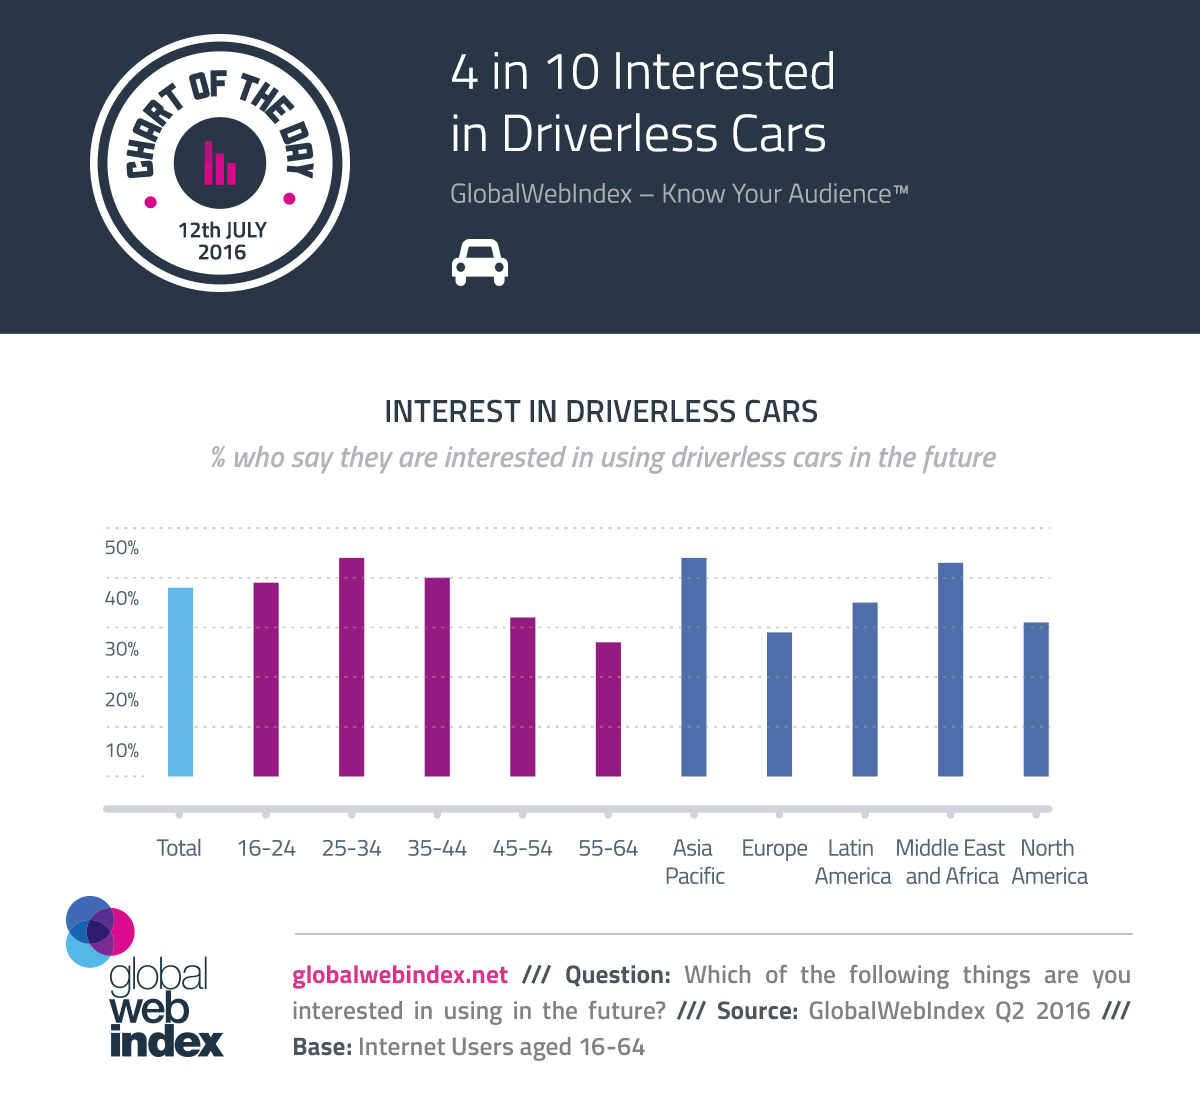 4 in 10 interested in driverless cars